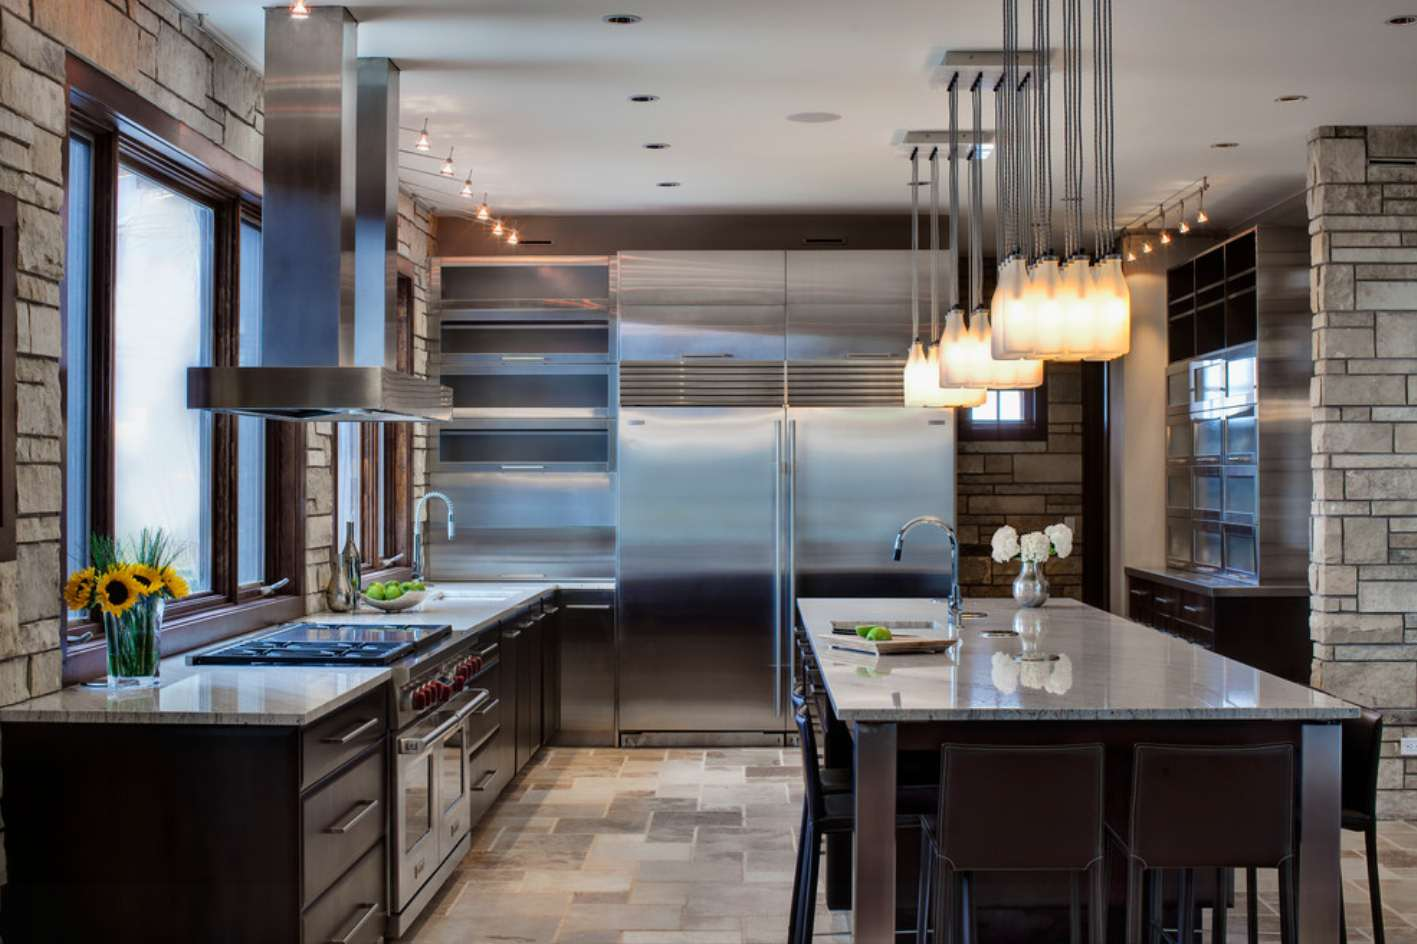 Modern interior decoration in the stone faced kitchen area